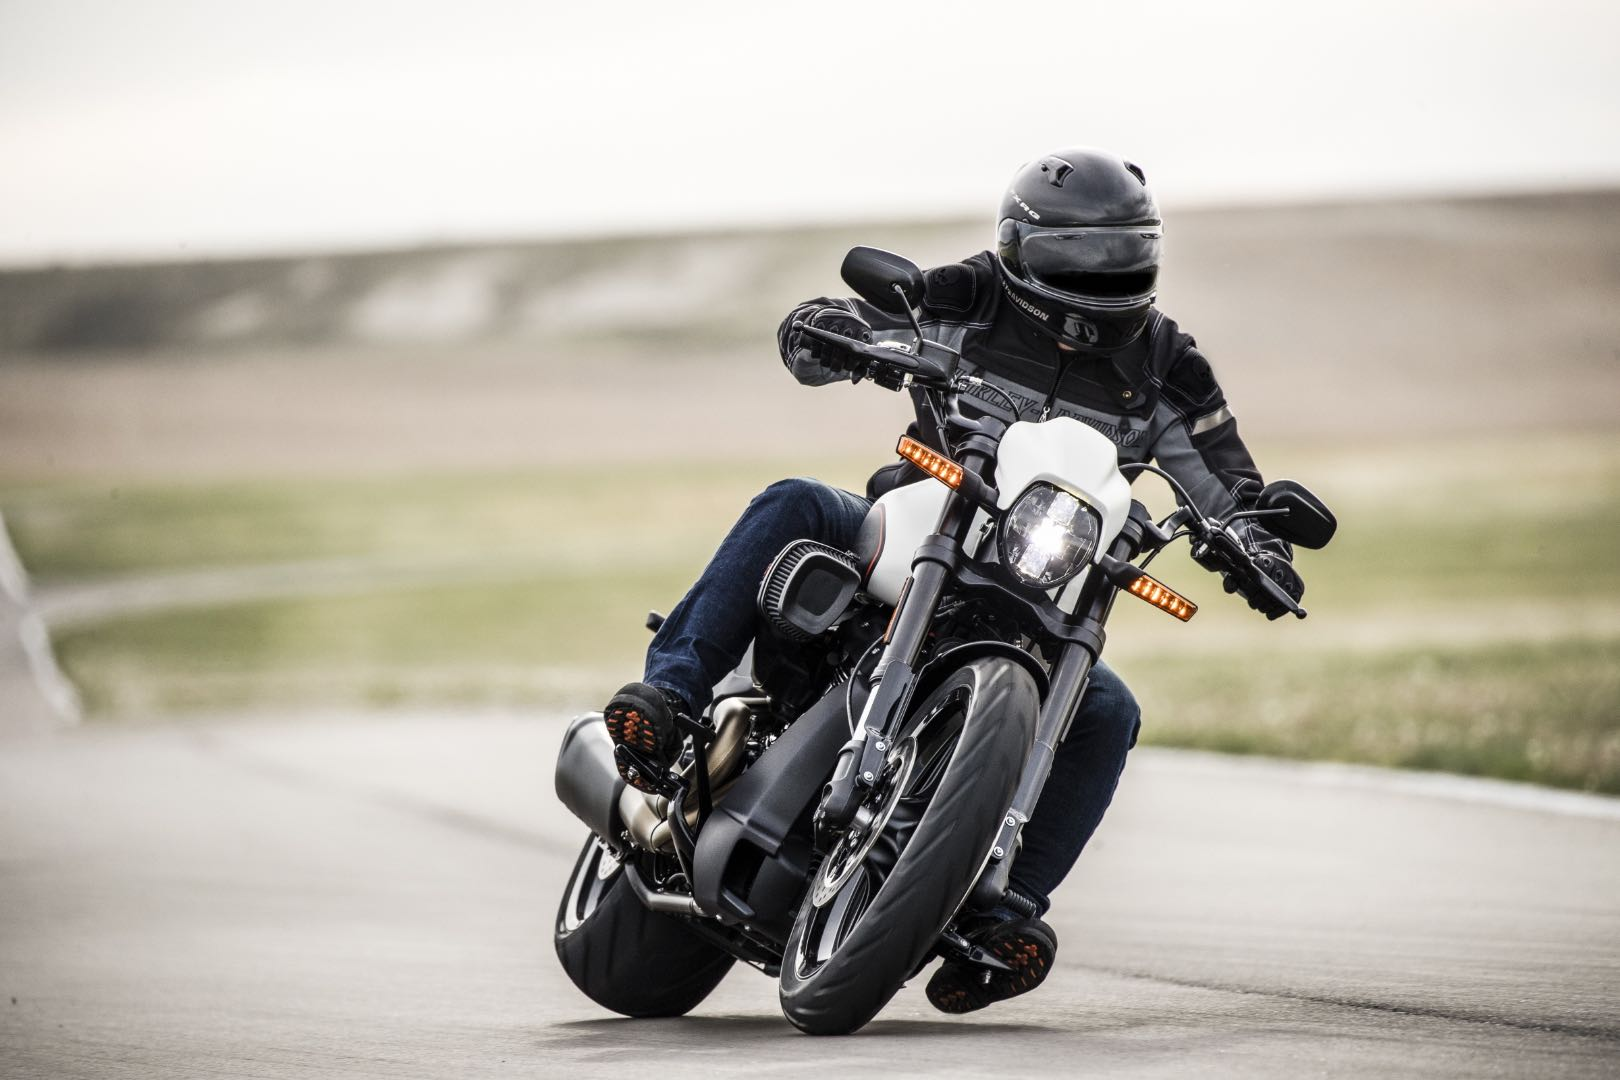 2019 Harley-Davidson FXDR 114 photos